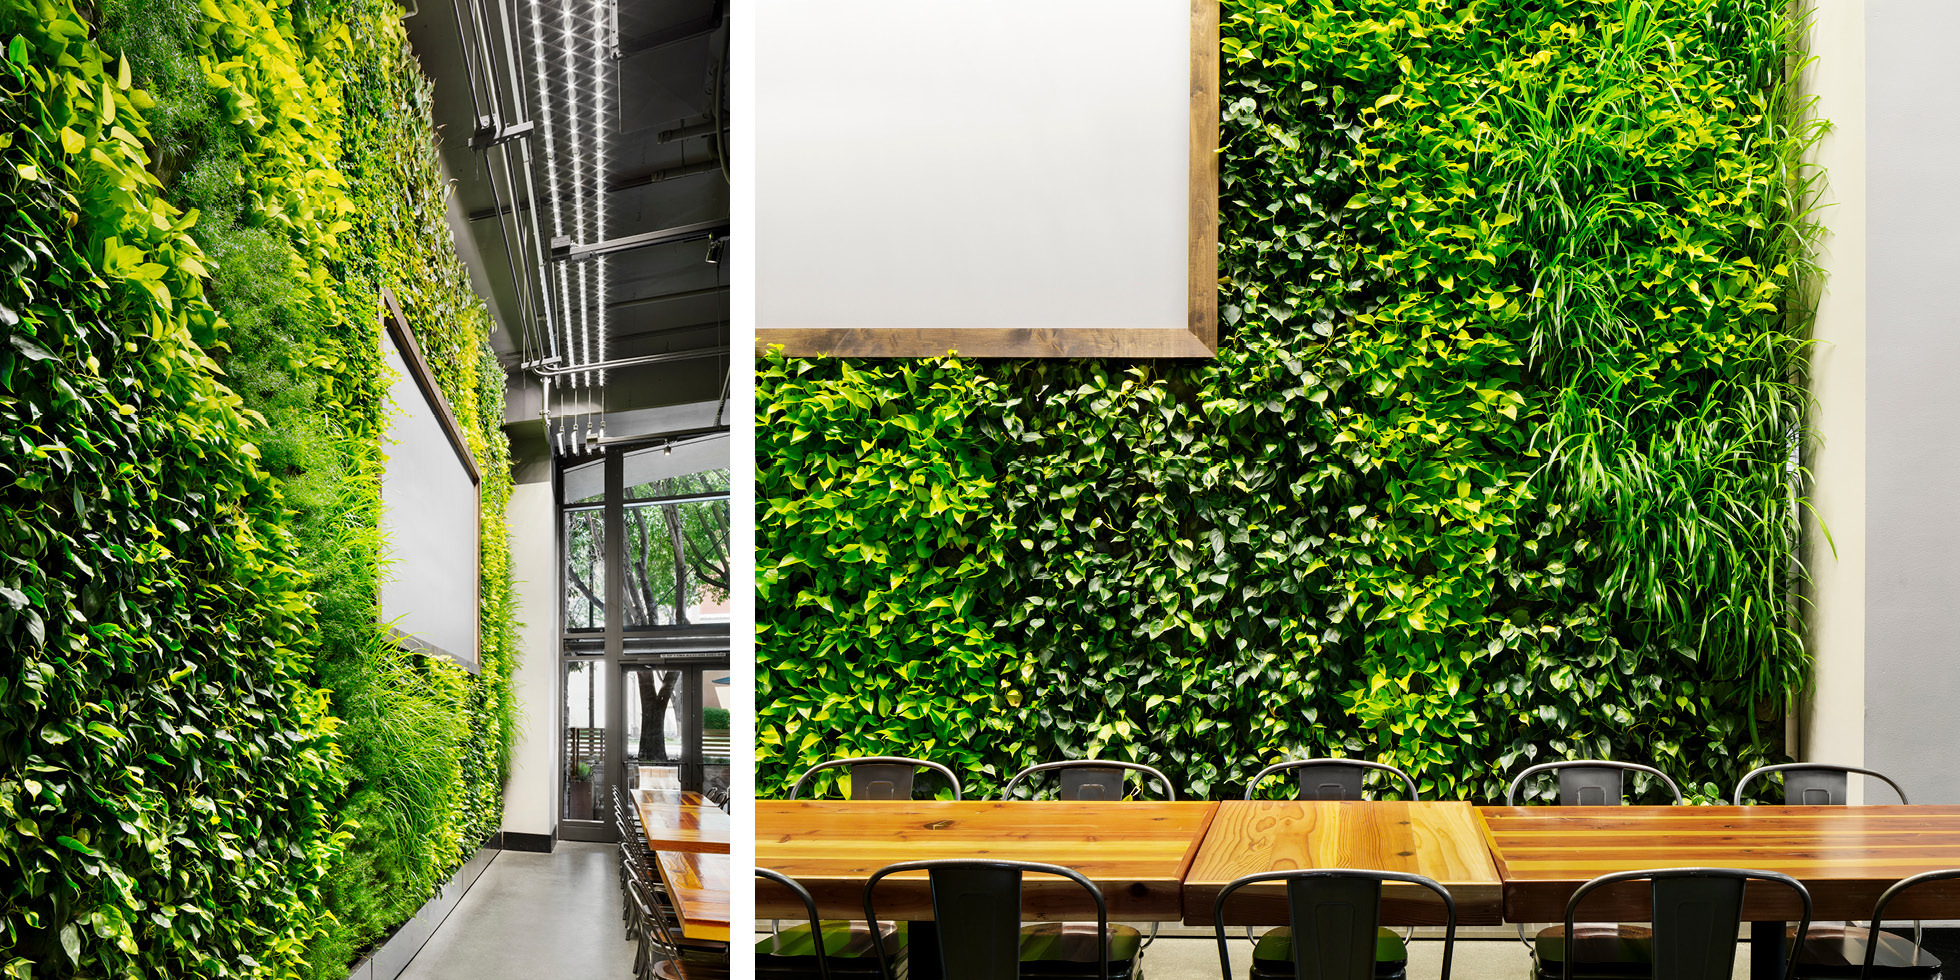 Steins Beer Garden Living Wall by Habitat Horticulture - View 5